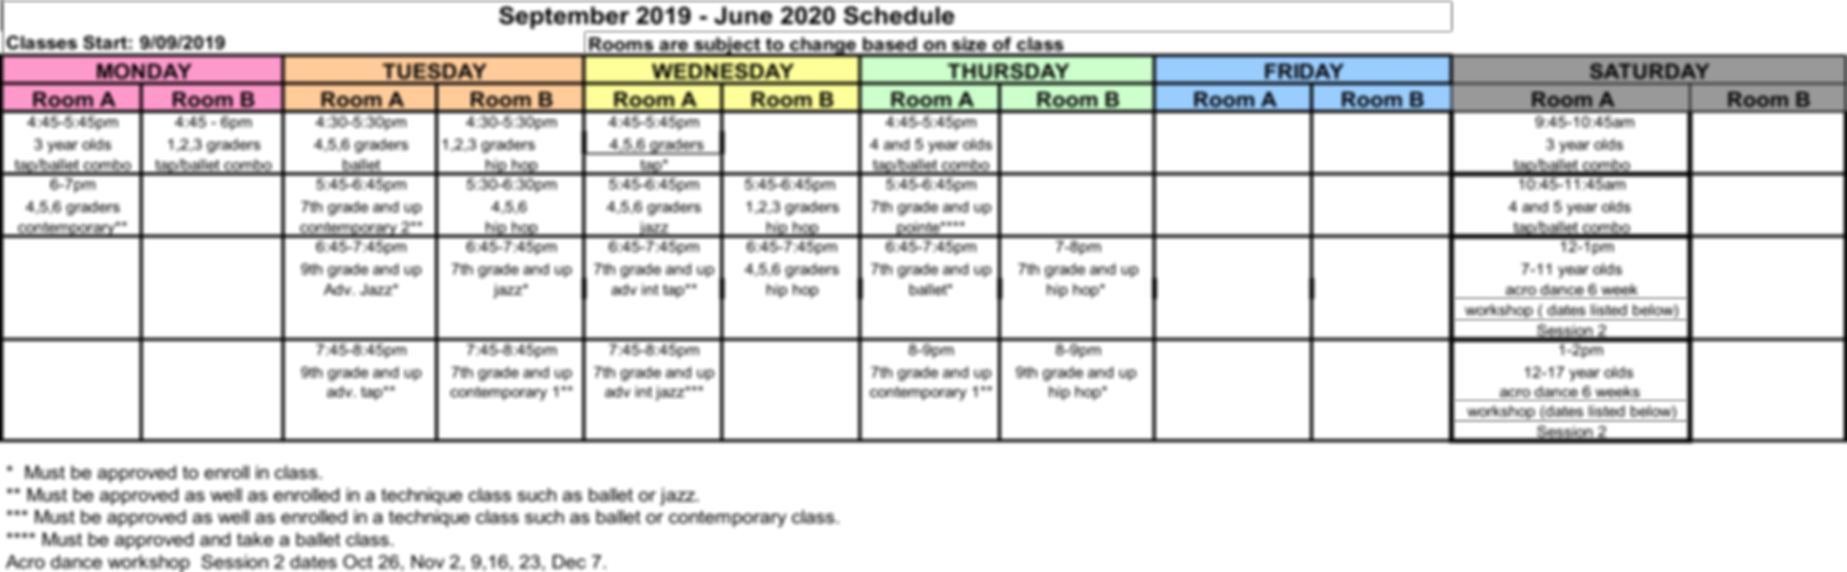 Class Schedule 2019 20.png